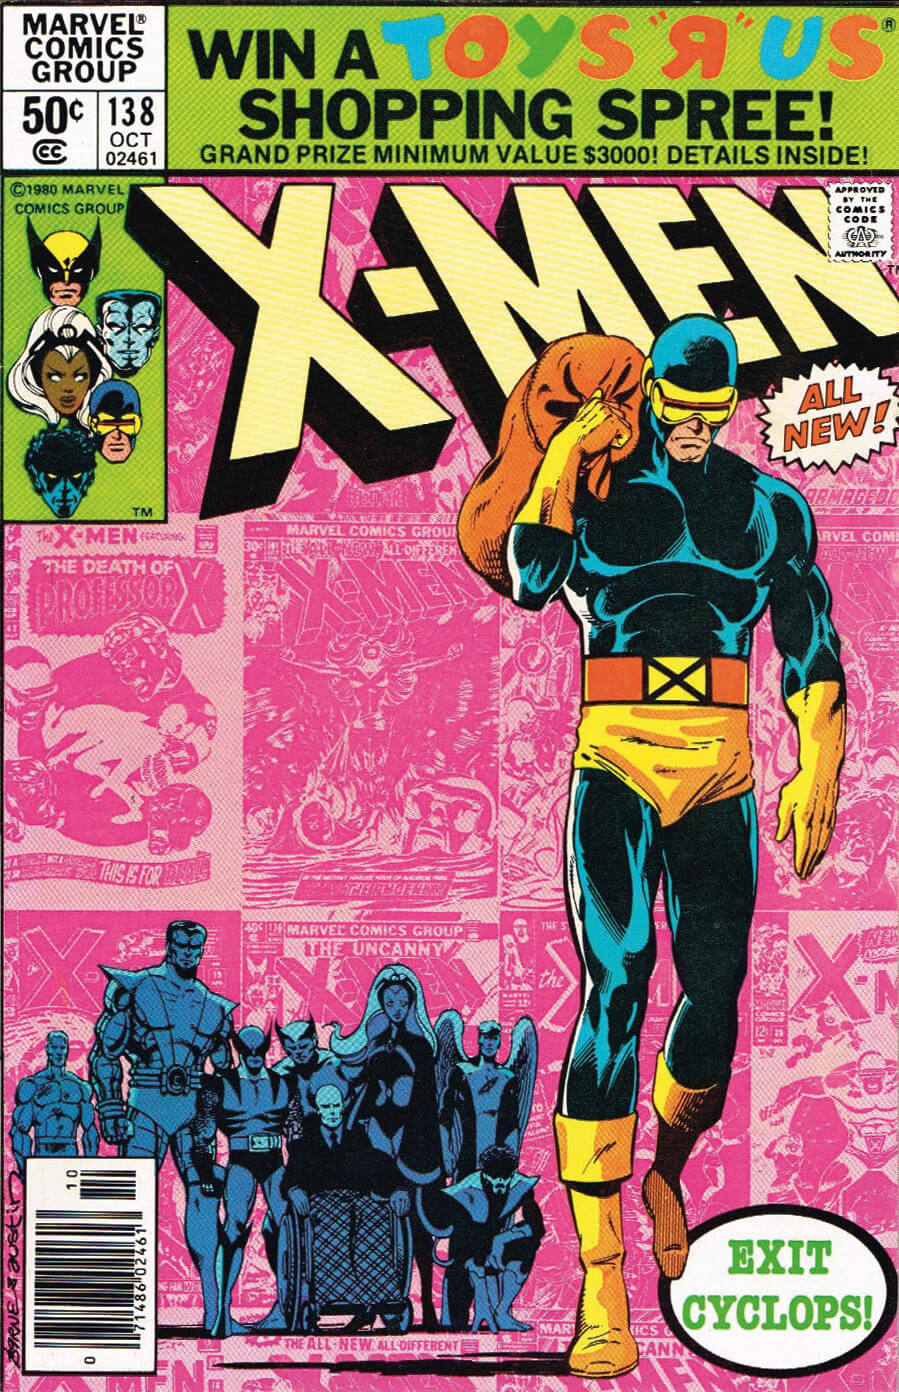 Uncanny X-Men 138 by John Byrne and Terry Austin